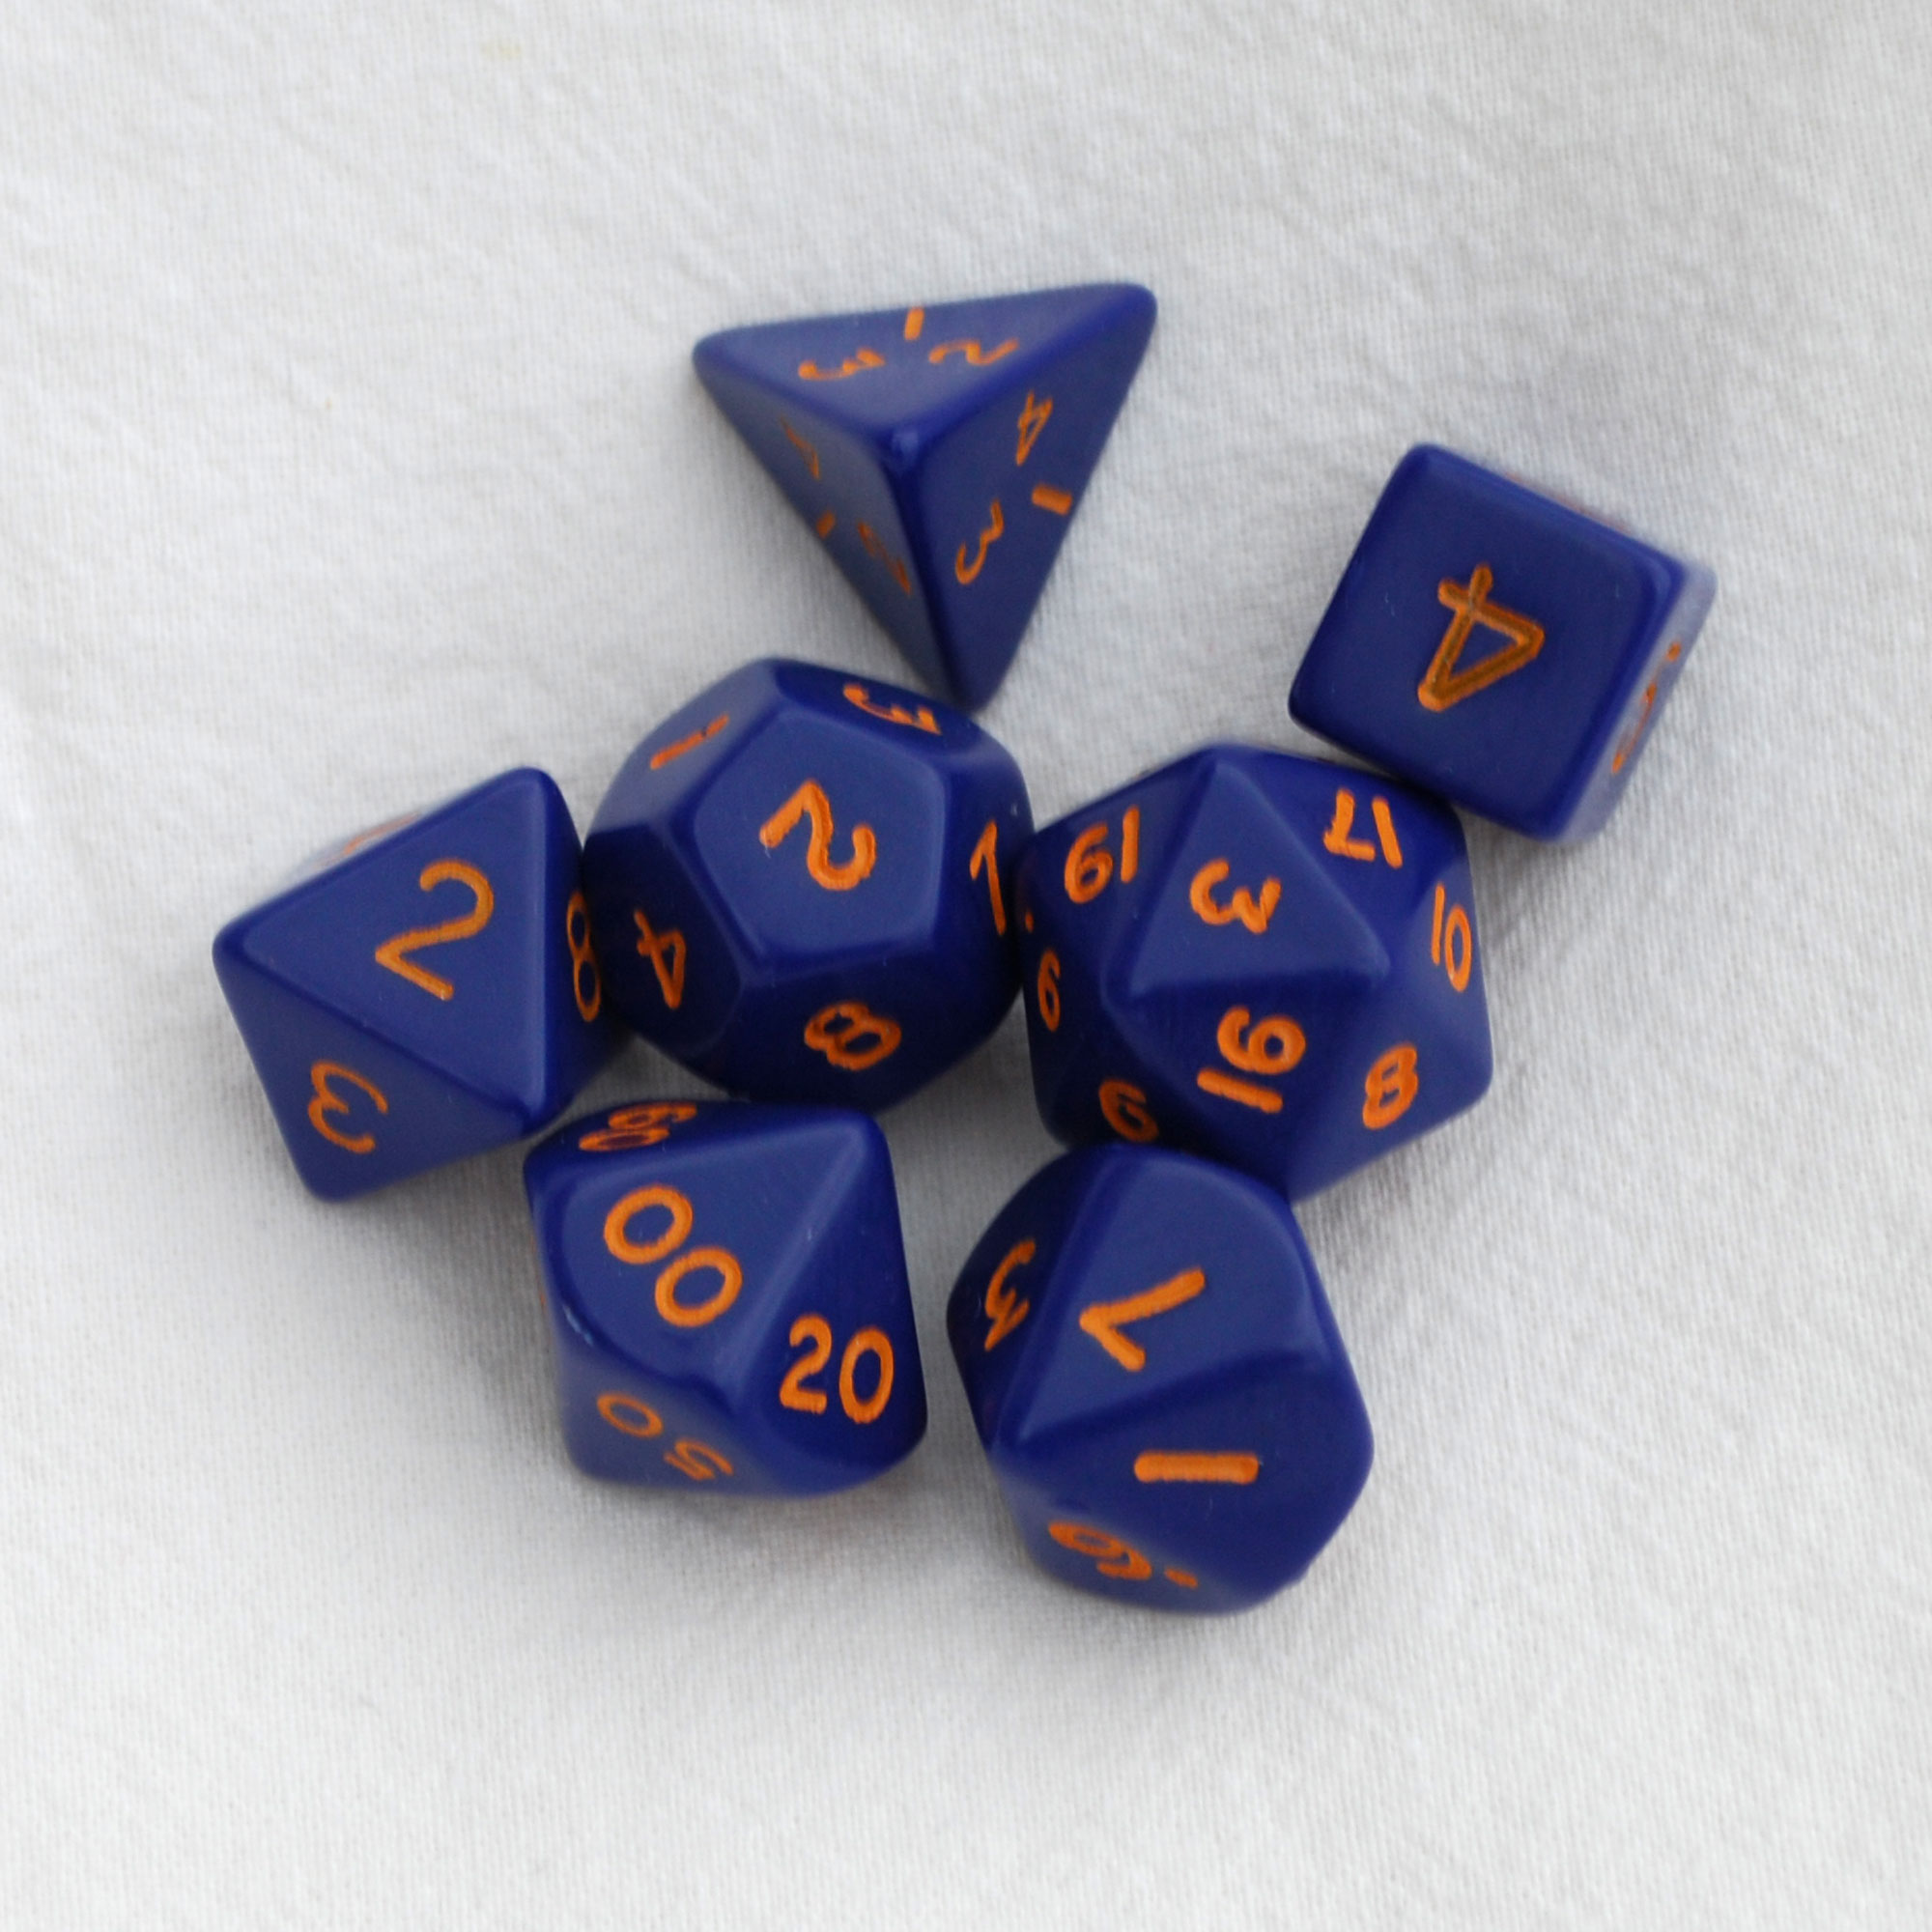 Opaque Dice Set D20 Poly Dice set - Dark Blue with Orange numbers